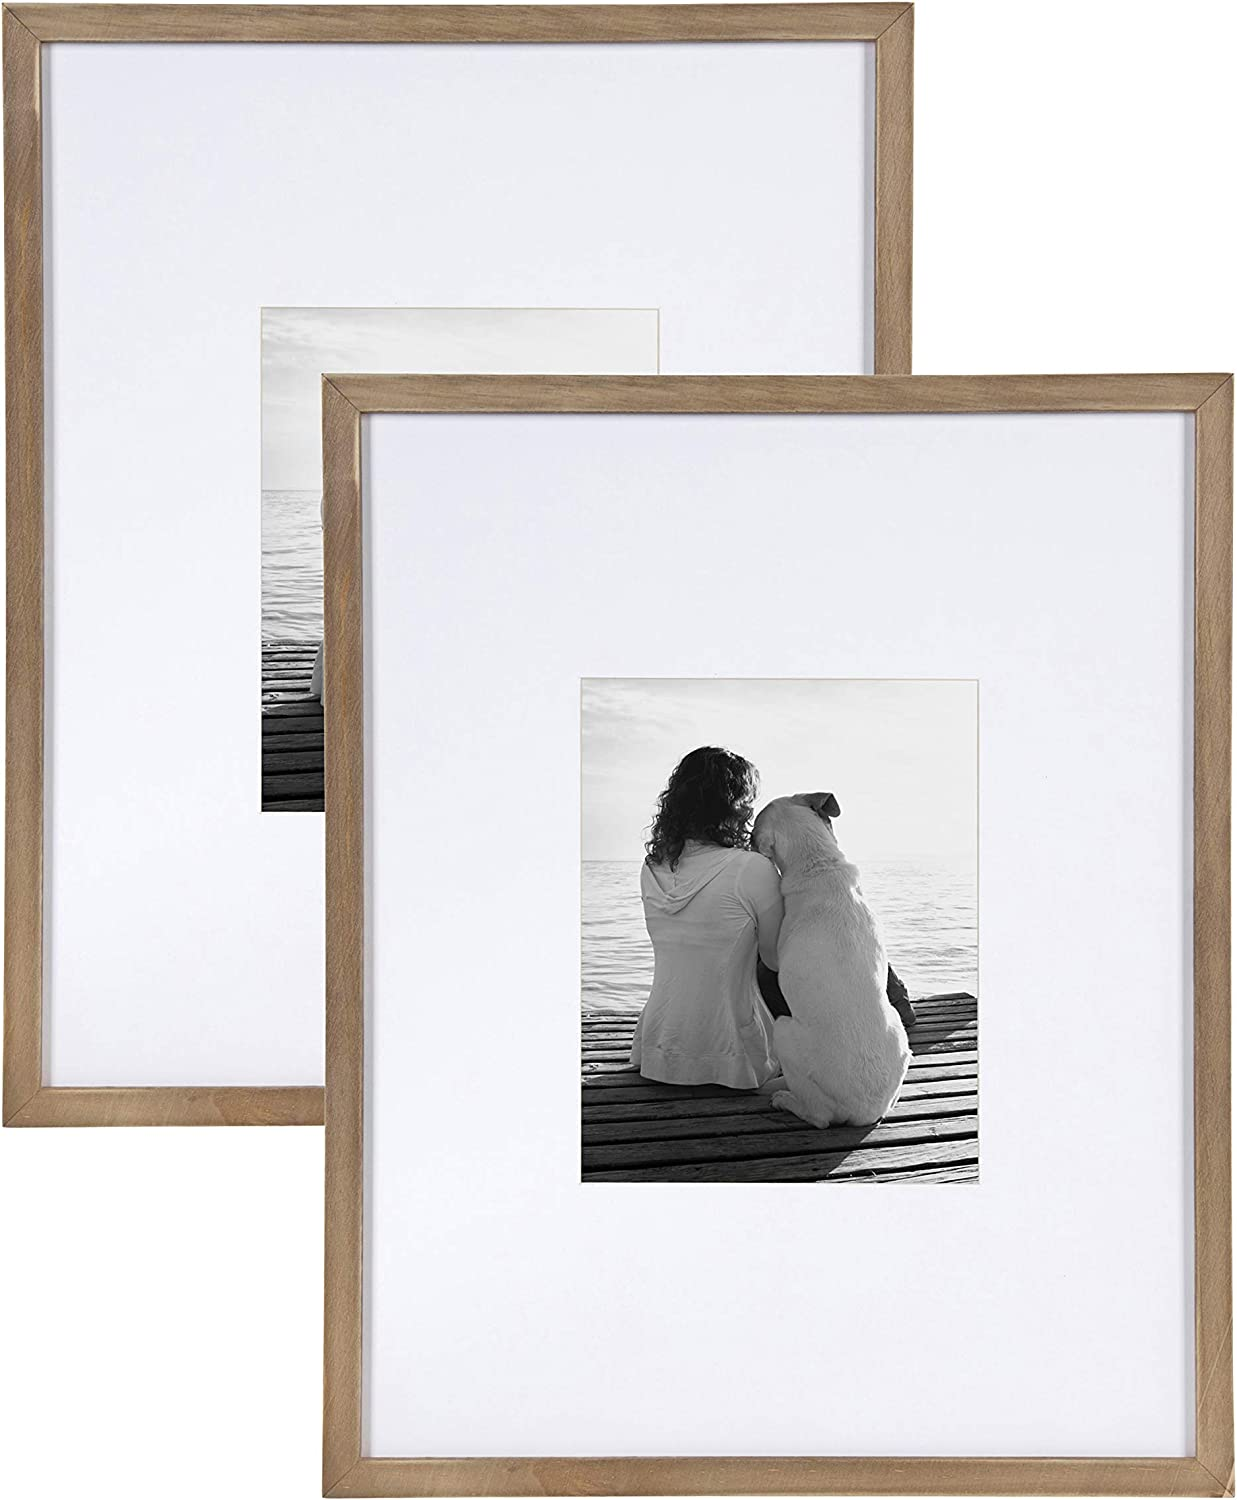 Amazon Prime Day Deals - DesignOvation Gallery 16x20 matted to 8x10 Wood Picture Frame, Set of 2, Rustic Brown, 2 Count